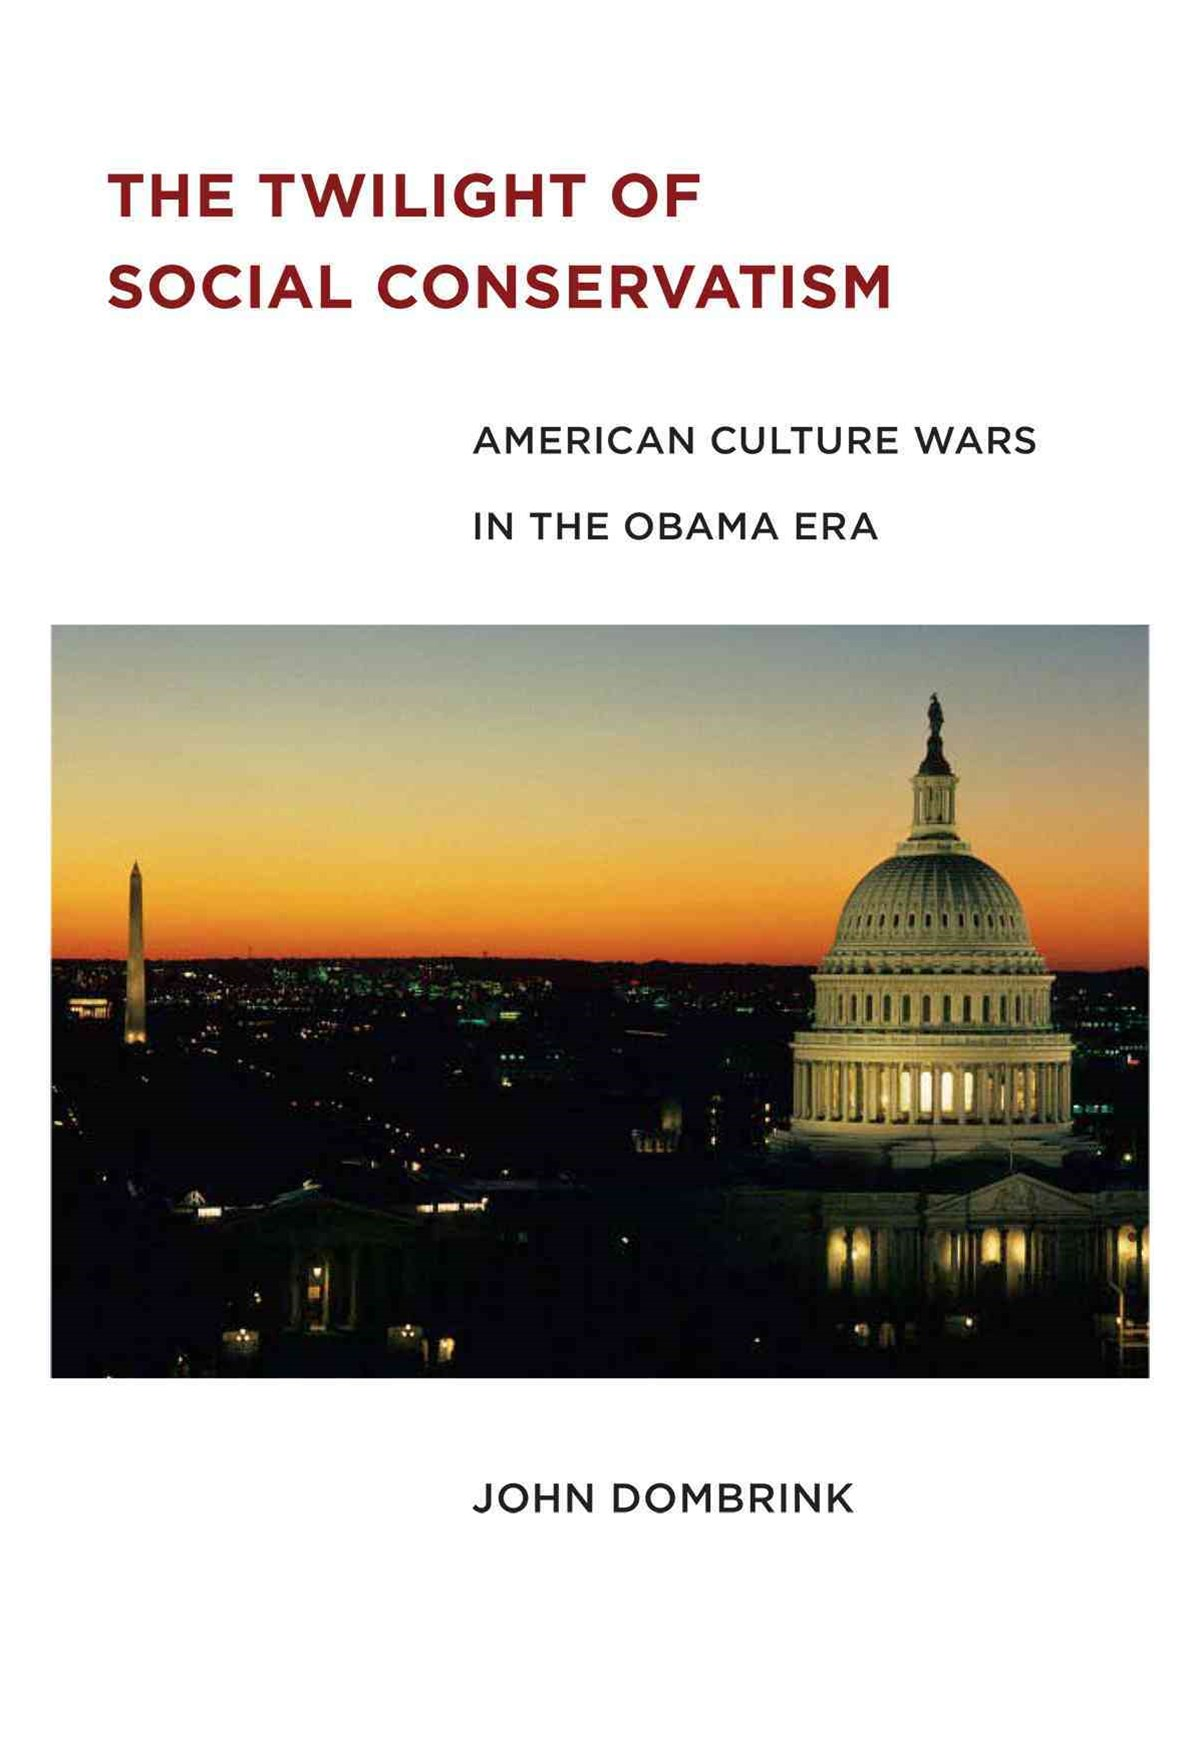 The Twilight of Social Conservatism